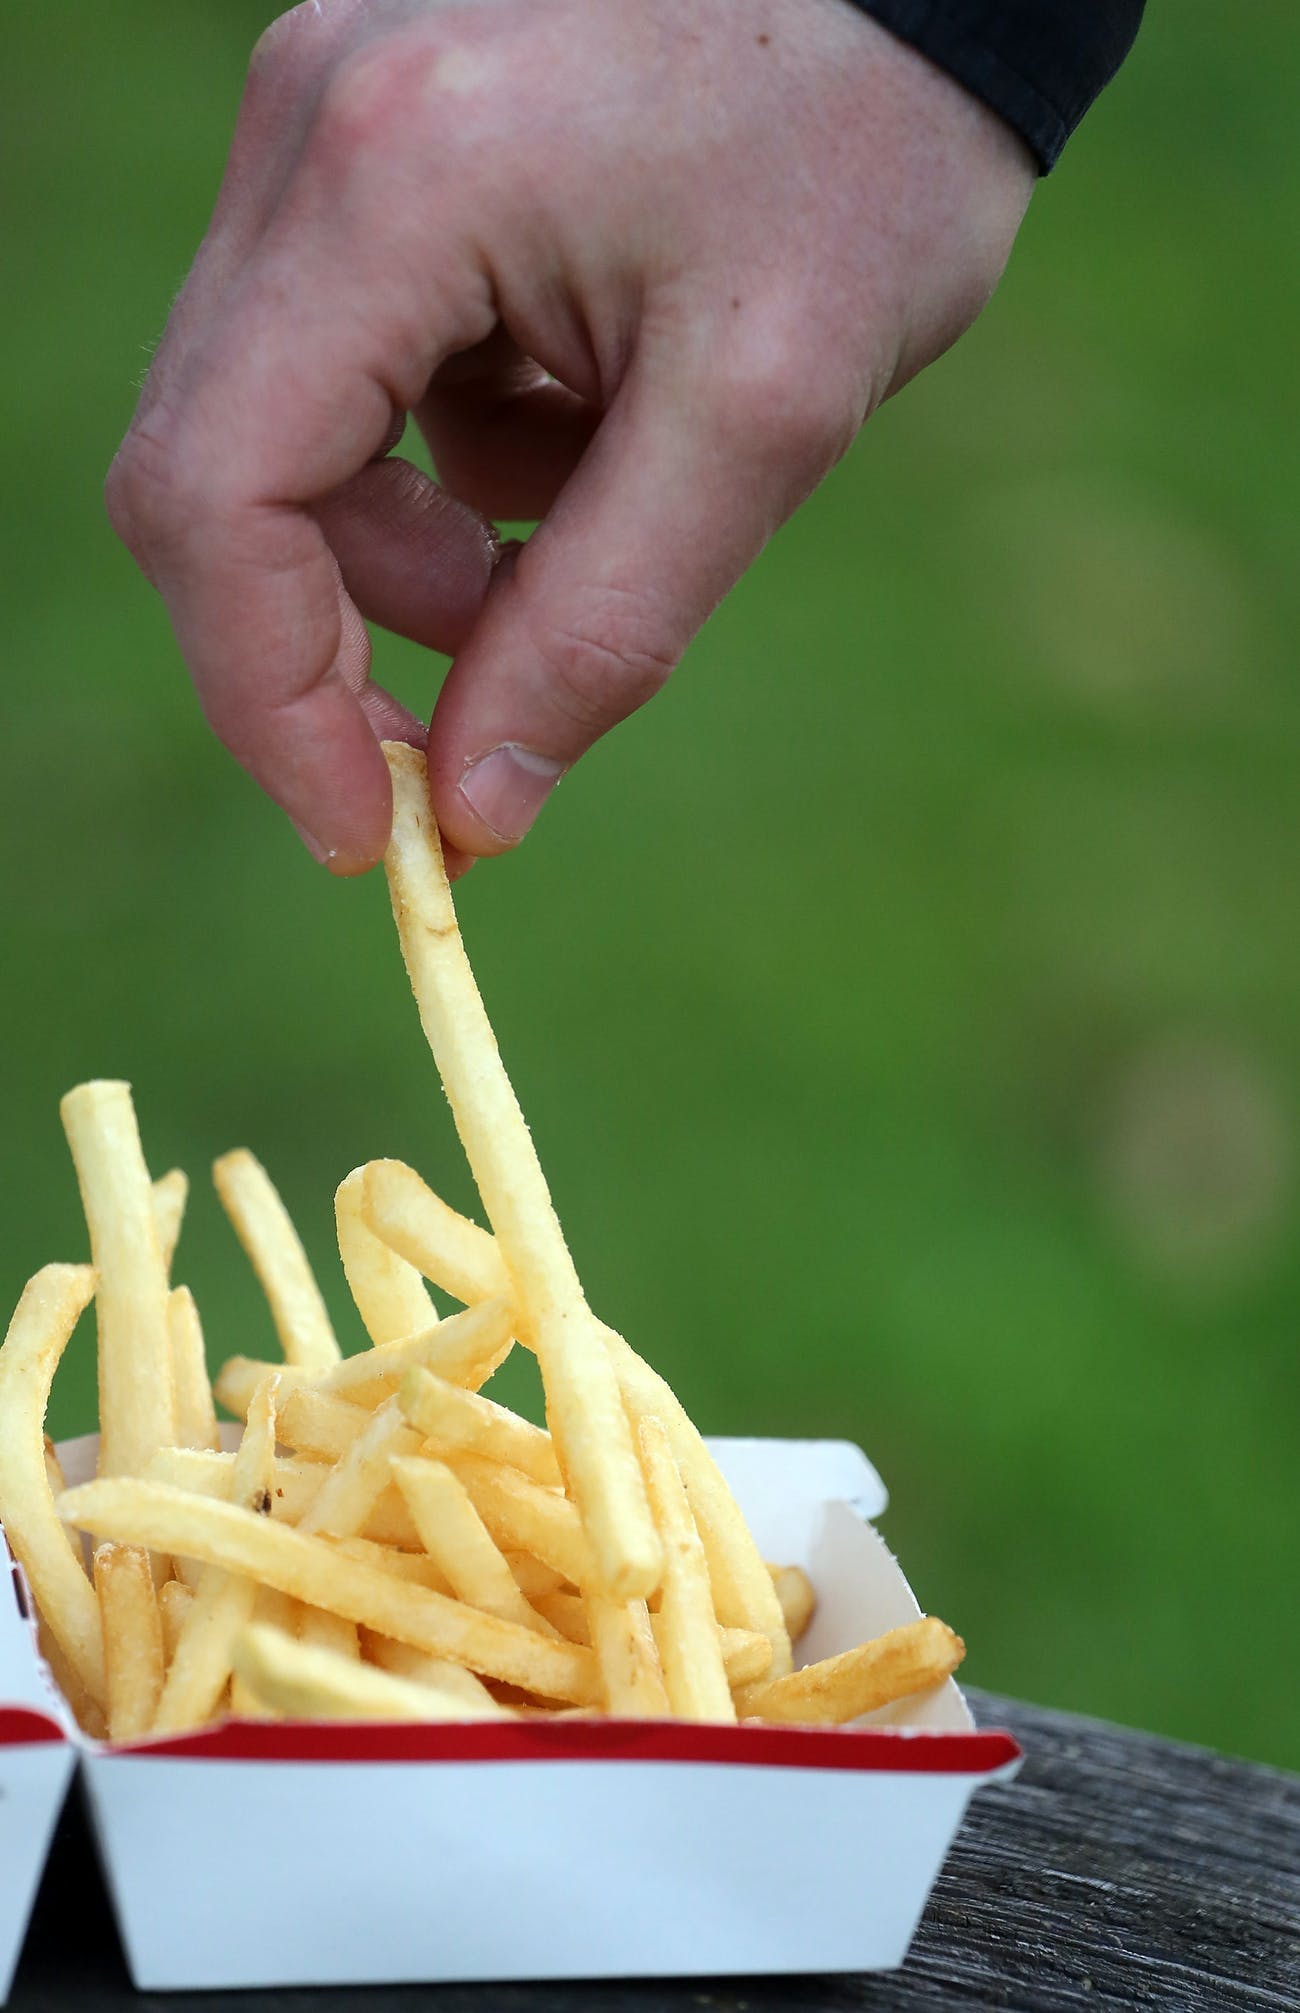 BRISTOL, ENGLAND - JANUARY 07: In this photo-illustration a man eats French fries purchased from a fast food outlet on January 7, 2013 in Bristol, England. A government-backed TV advert - made by Aardman, the creators of Wallace and Gromit - to promote healthy eating in England, is to be shown for the first time later today. England has one of the highest rates of obesity in Europe - costing the NHS 5 billion GDP each year - with currently over 60 percent of adults and a third of 10 and 11 year olds thought to be overweight or obese. (Photo by Matt Cardy/Getty Images)